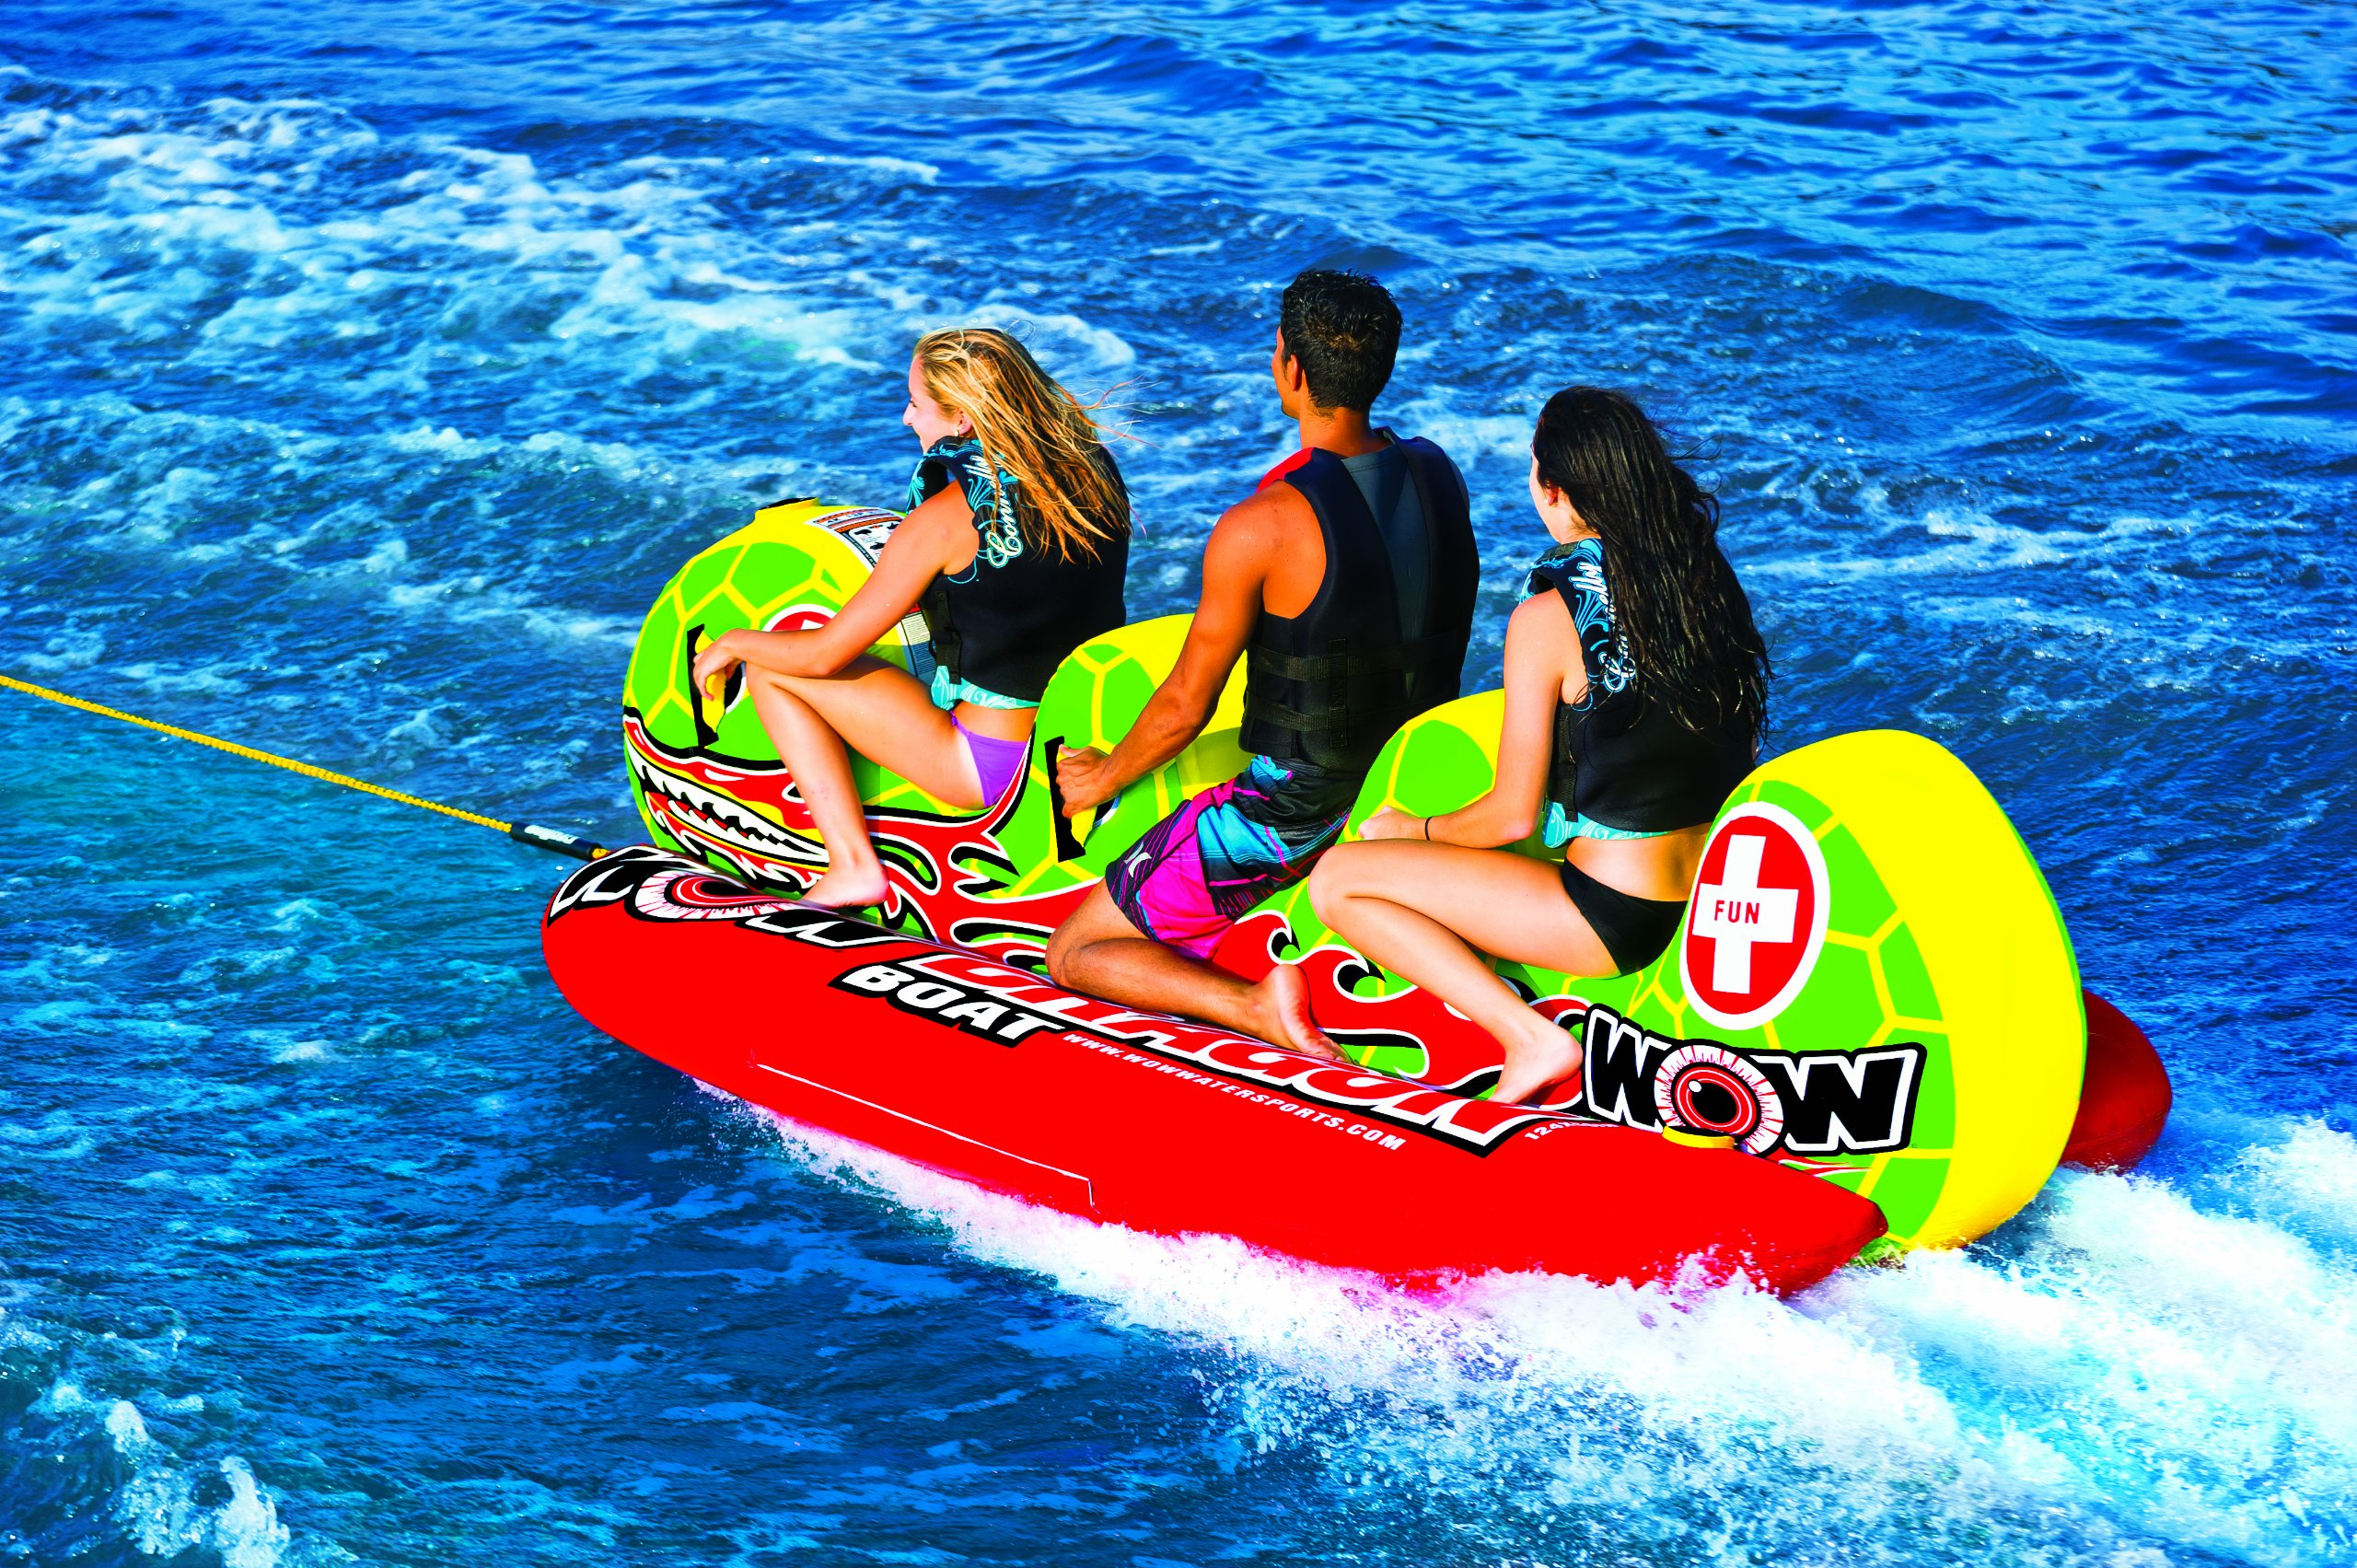 WOW World of Watersports 13-1060, Dragon Boat Inflatable Towable, Ski Tube, 3 Person by WOW Sports (Image #4)